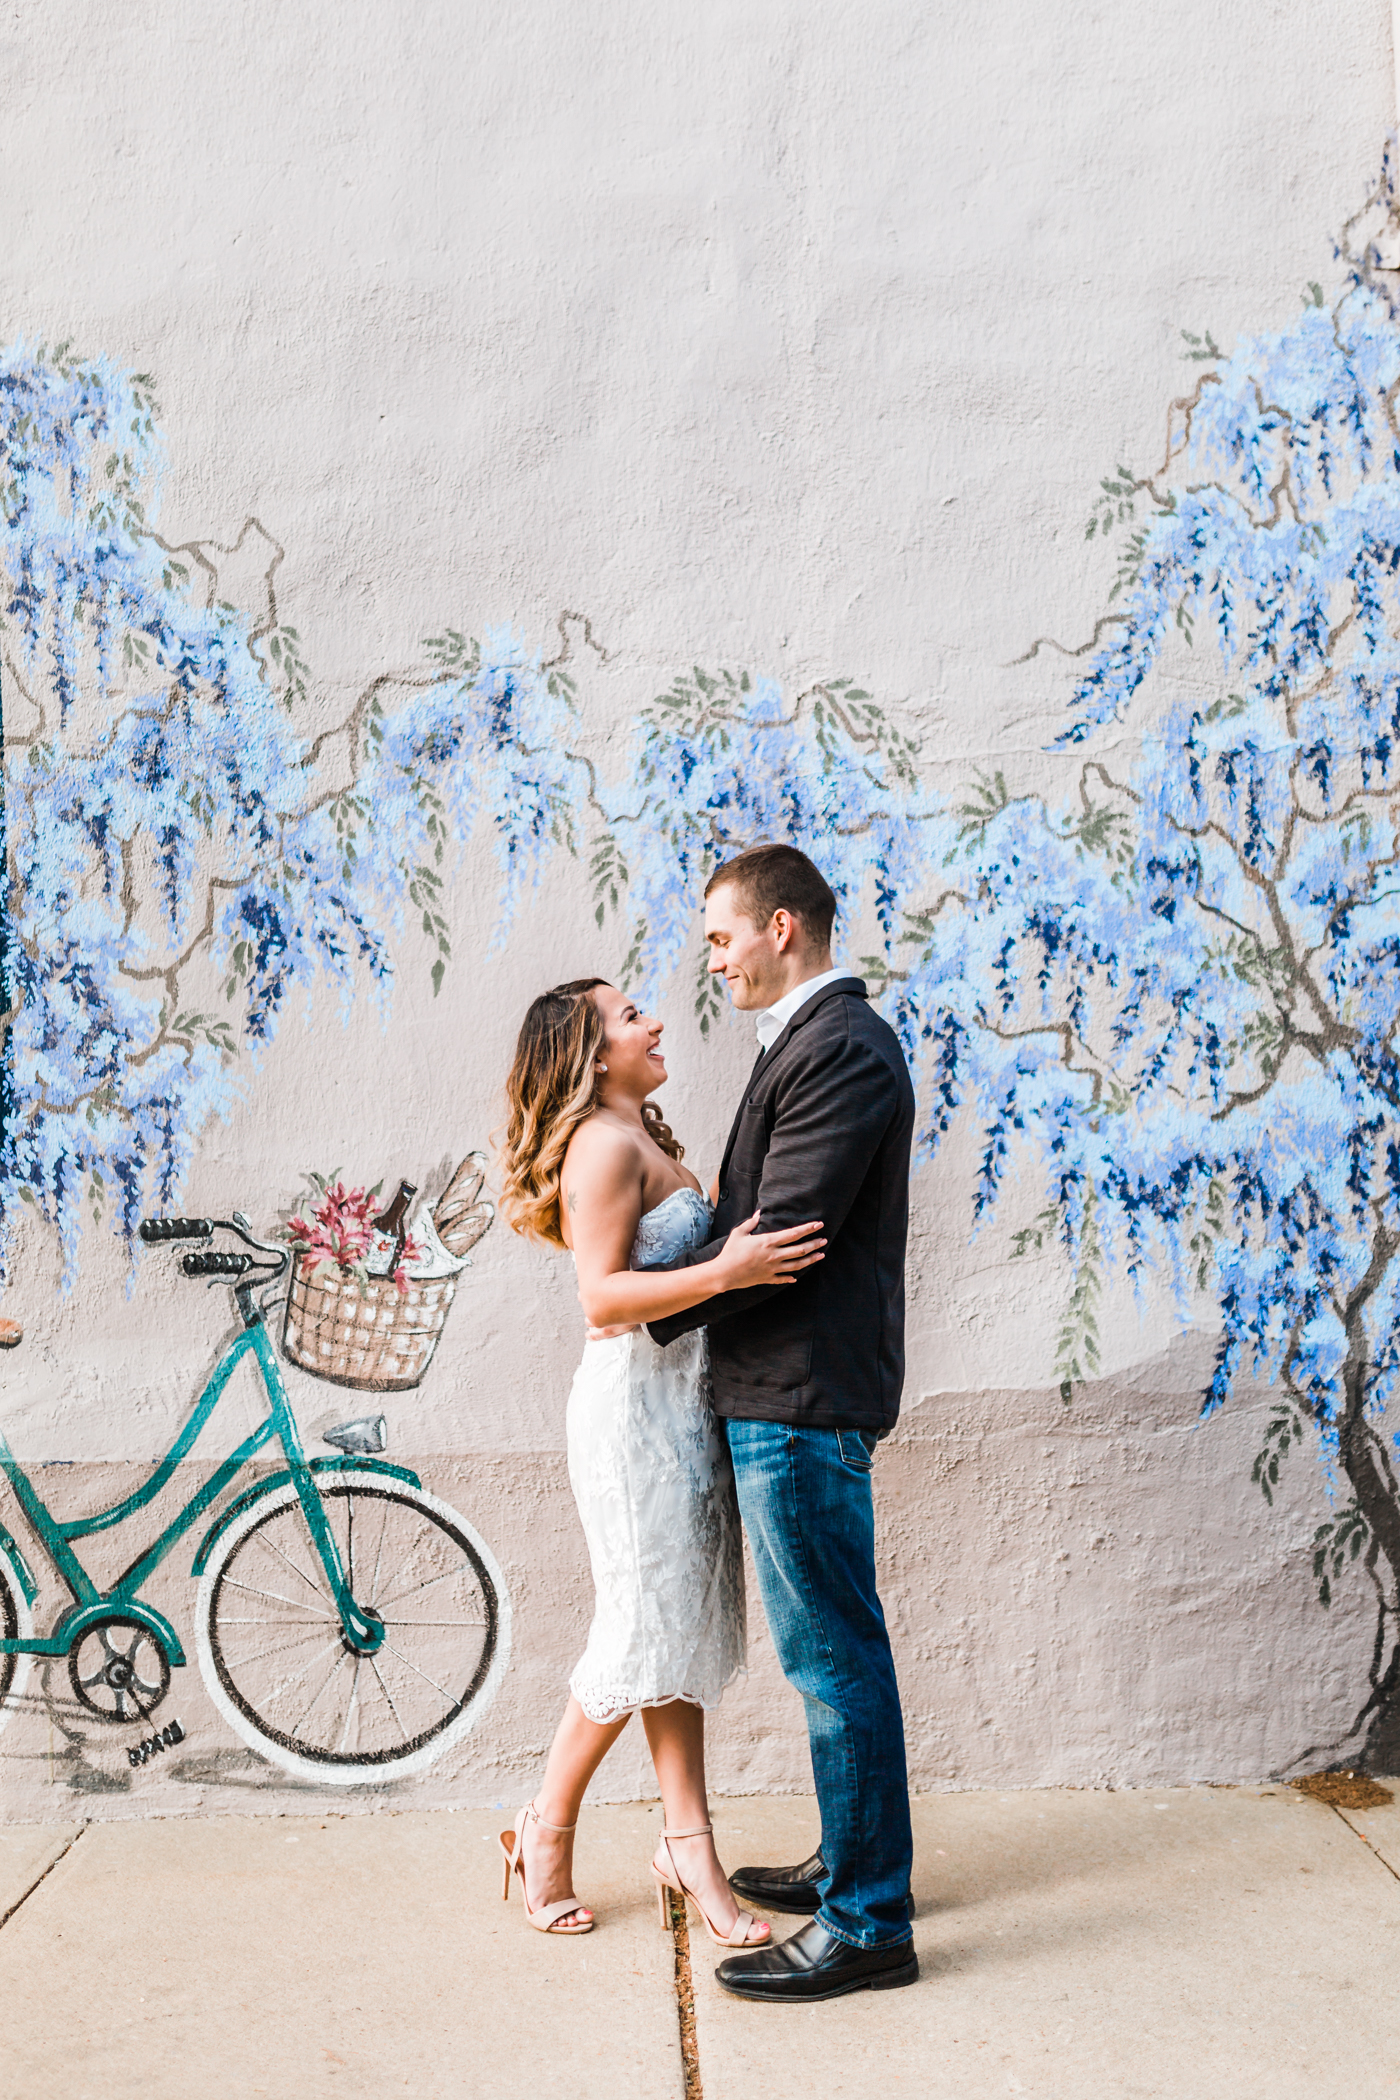 adorable couple laughing together in annapolis, md - best wedding and engagement photographer and videographer in Annapolis